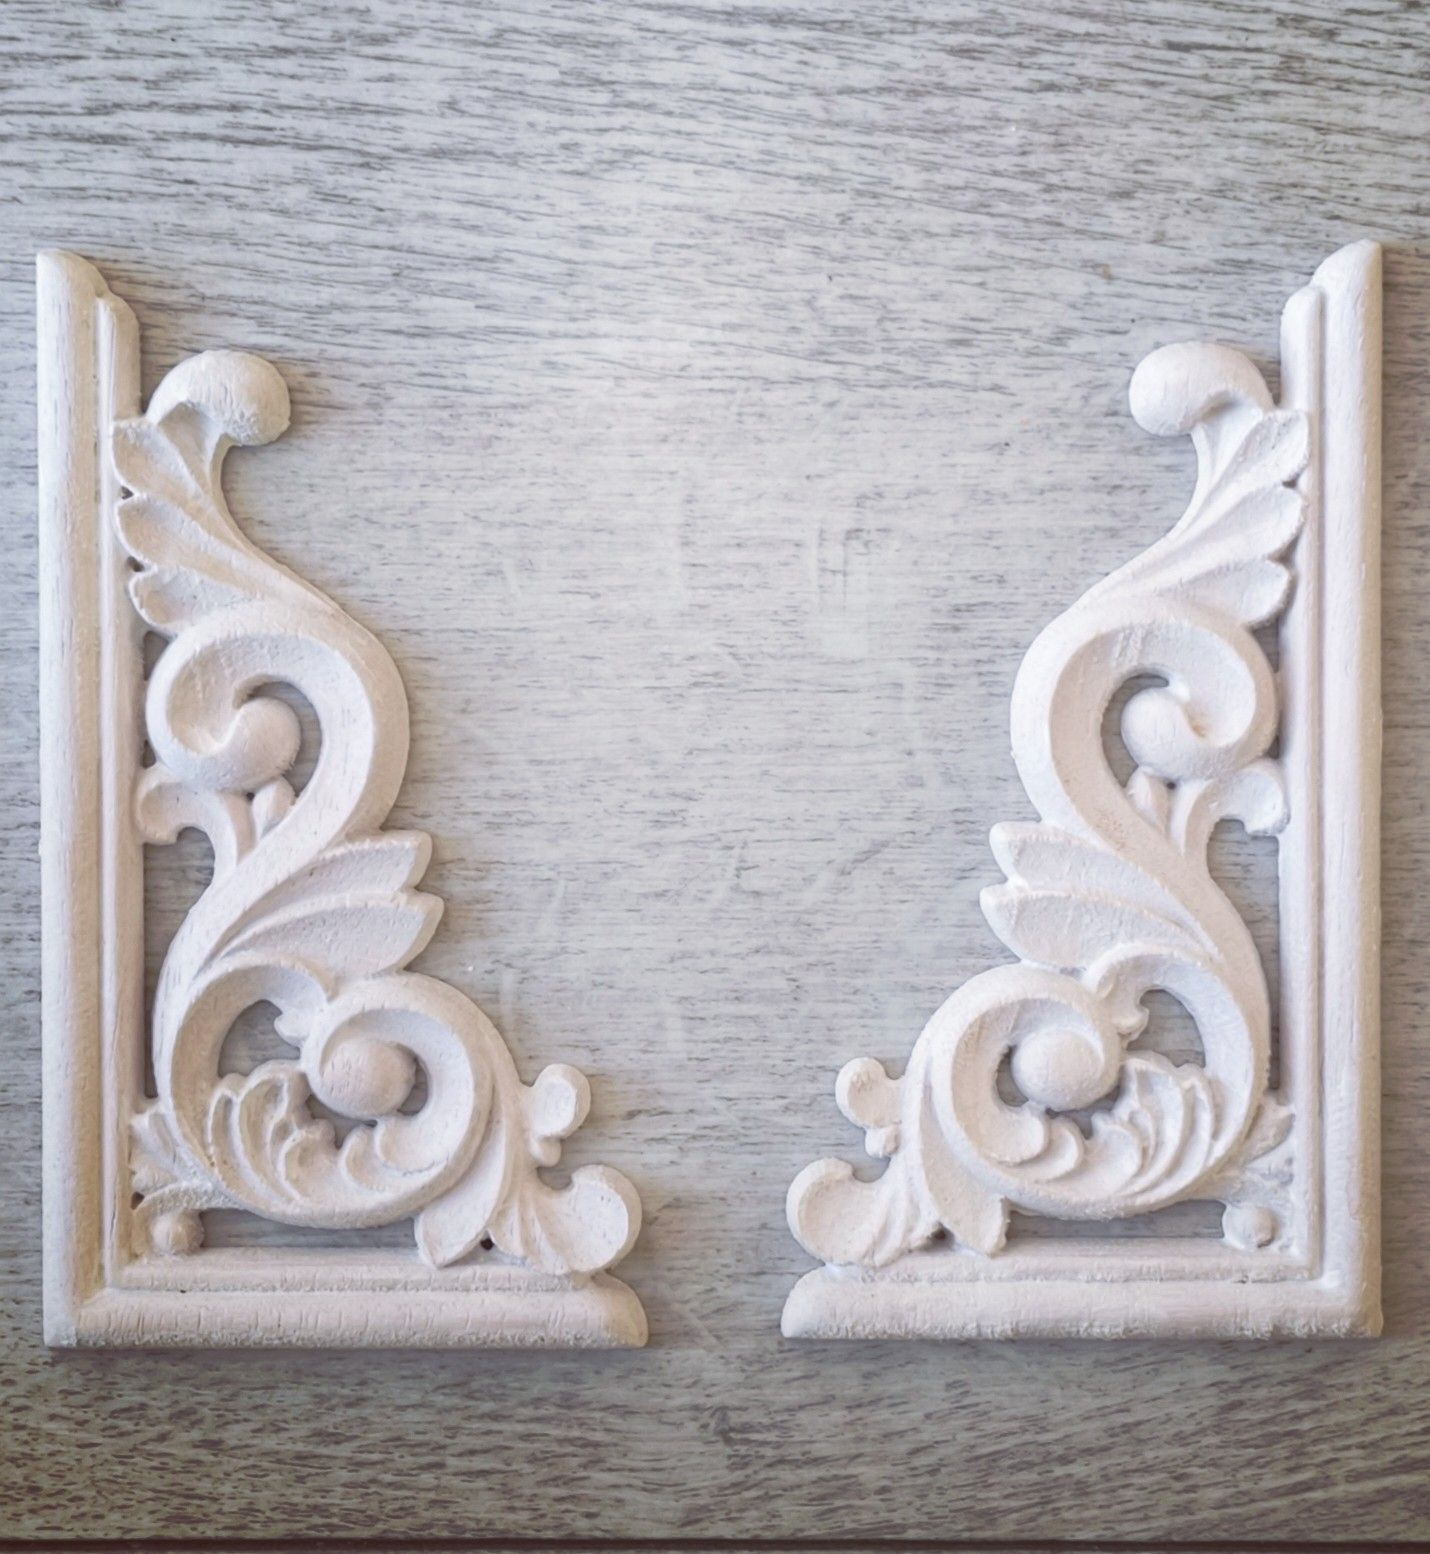 Shabby Chic Moulds Vintage Furniture Applique Wood Appliques And Onlays For Furniture Wood Pediment Cabinet Moulds Wood Applique Moulds In 2020 Ornate Swirl Shabby Chic Diy Ornate Furniture